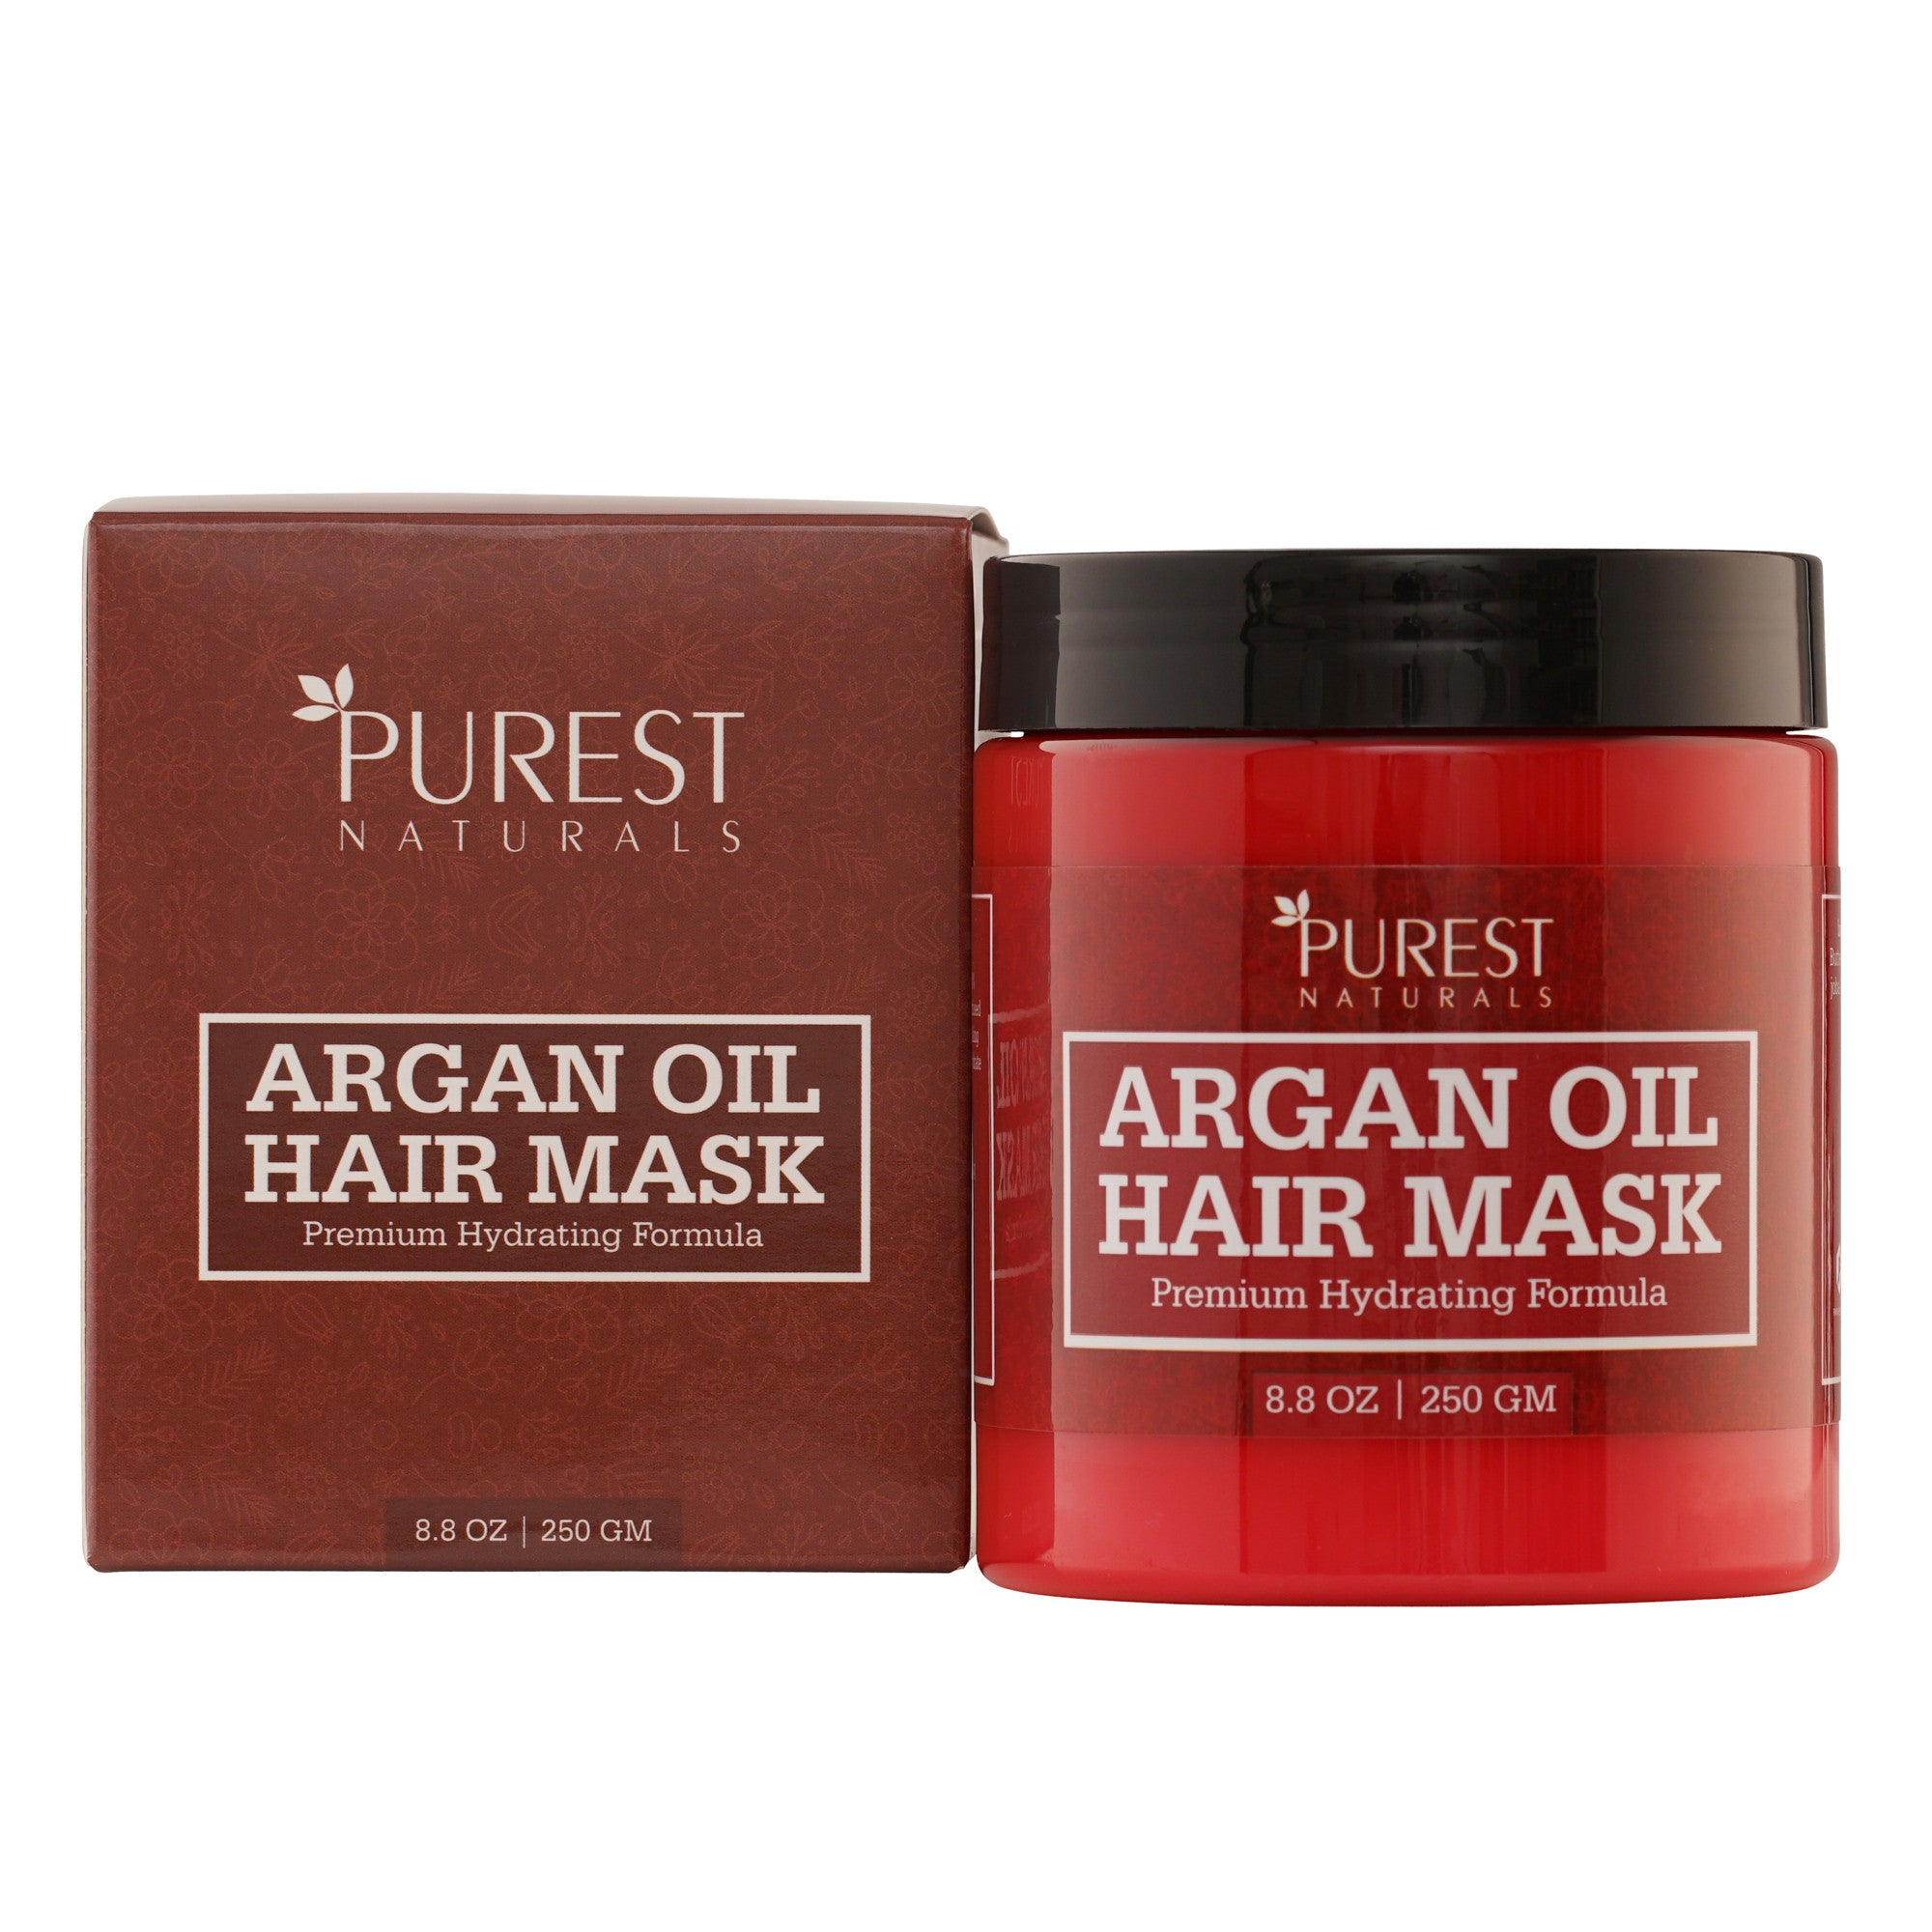 Purest Naturals Argan Oil Hair Mask